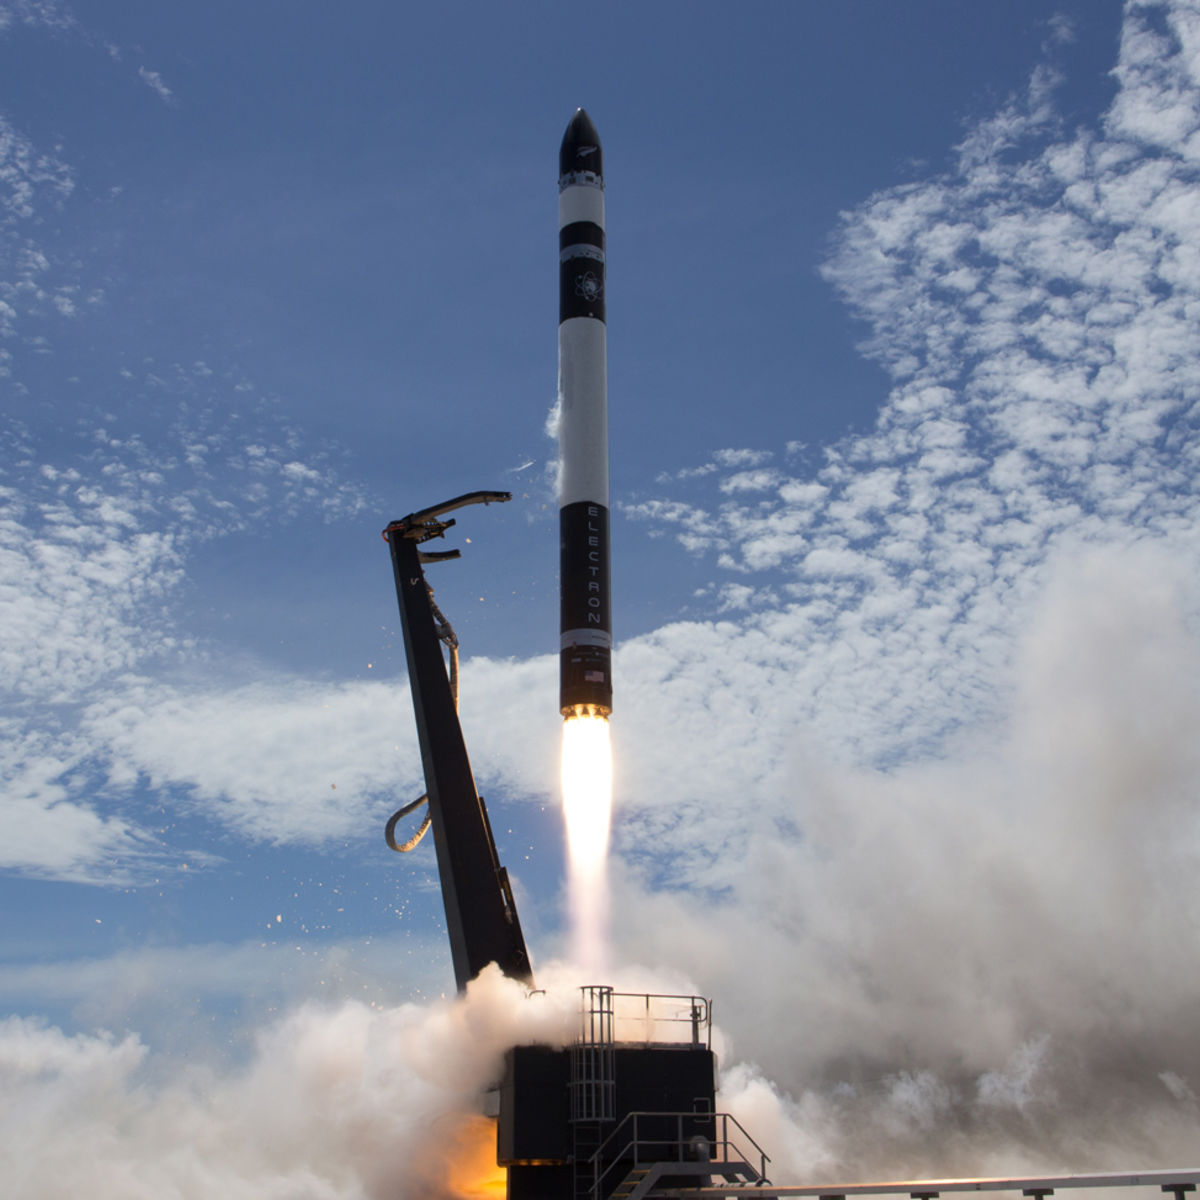 The first successful launch of the Rocket Lab Electron rocket on Jan 21, 2018. Credit: Rocket Lab